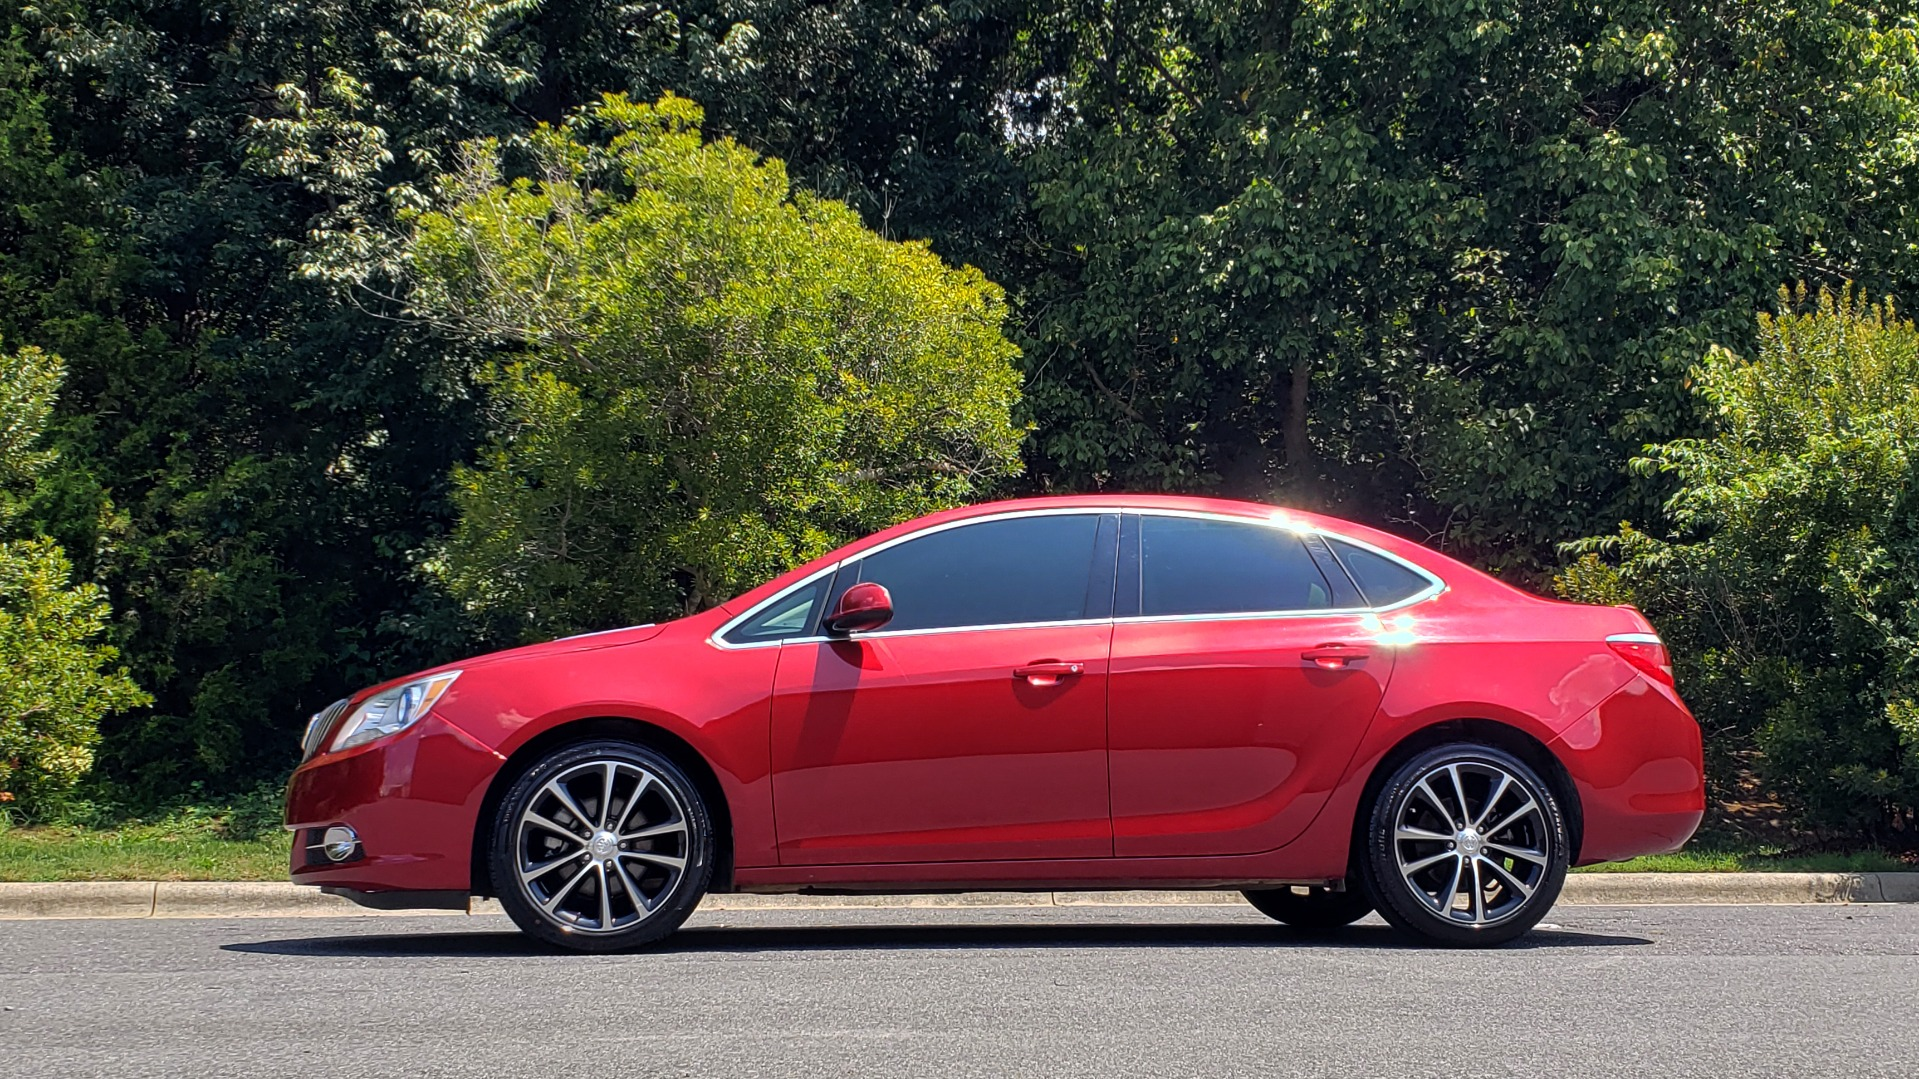 Used 2016 Buick VERANO SPORT TOURING / SUNROOF / HTD STS / 18IN WHEELS / REARVIEW for sale Sold at Formula Imports in Charlotte NC 28227 2